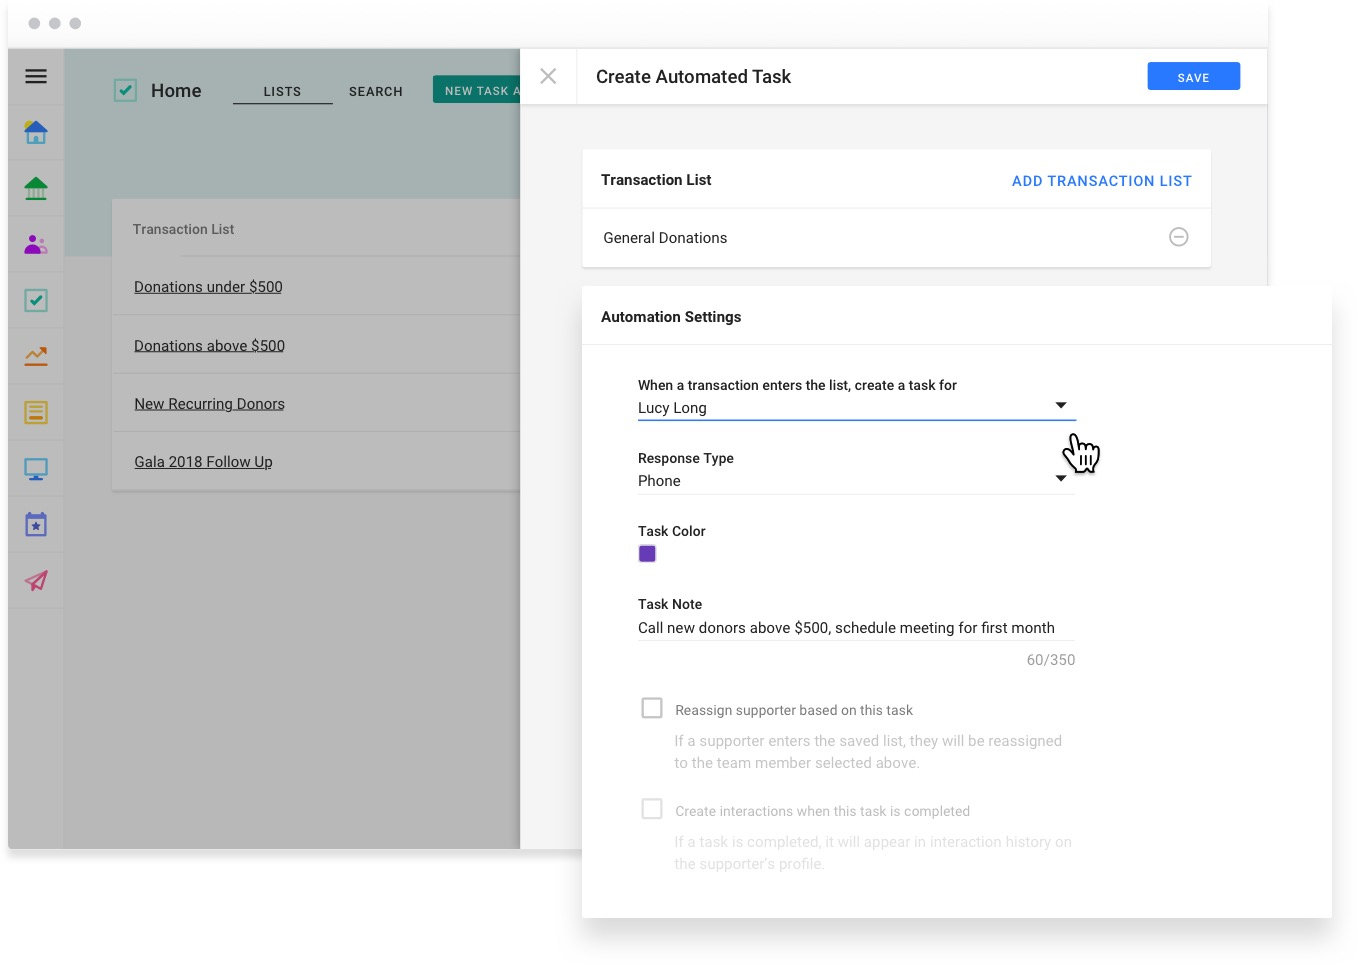 Create Automated Task flyout within the Tasks section of Funraise.